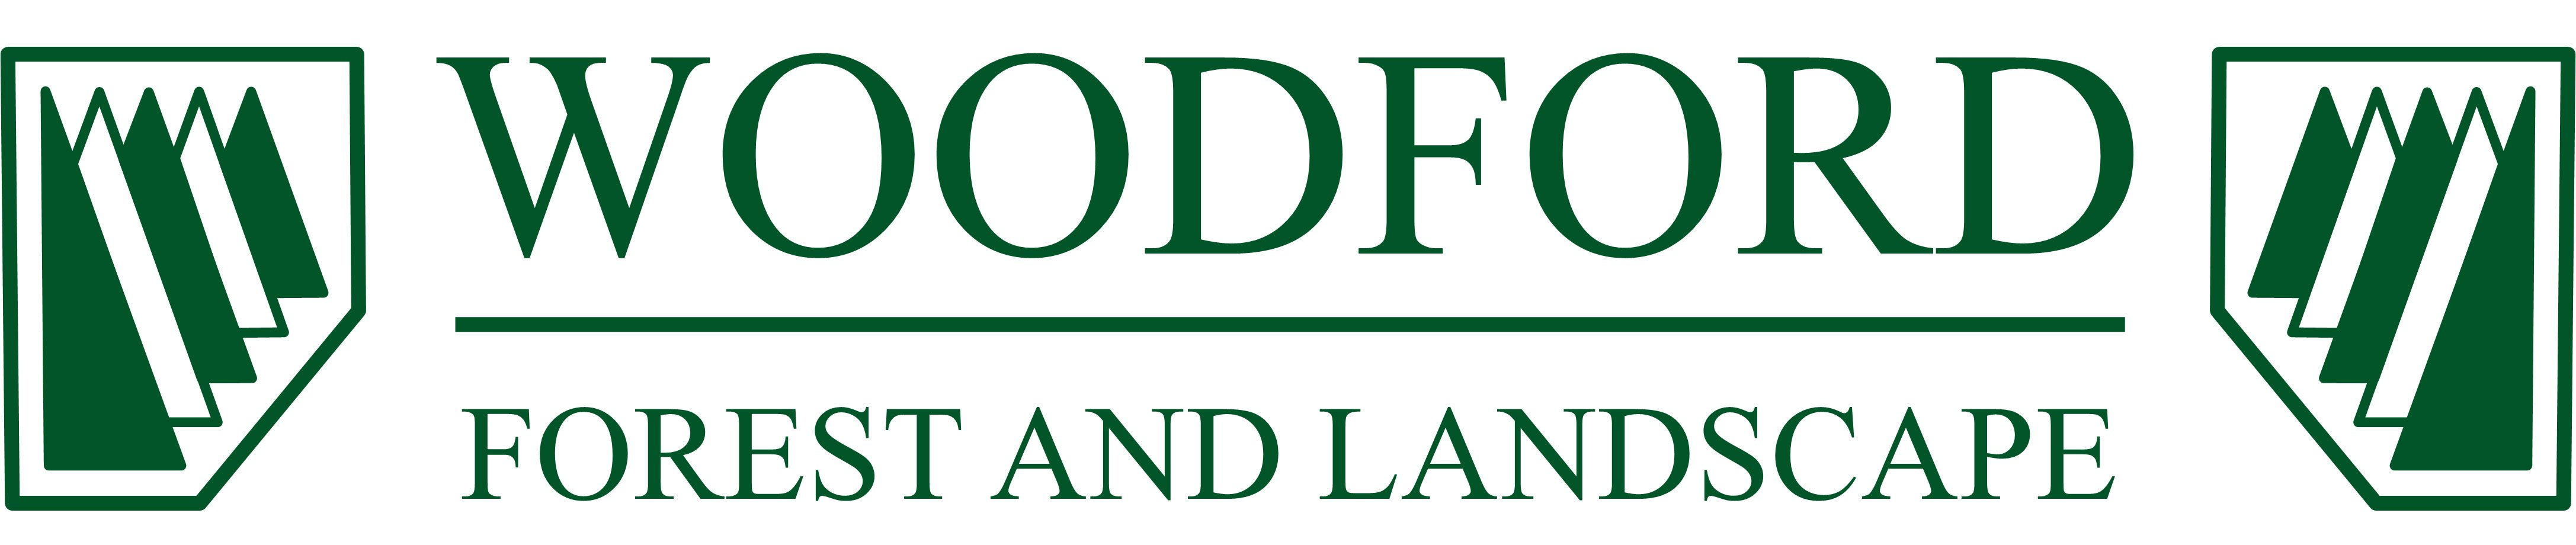 Woodford Forest and Landscape logo